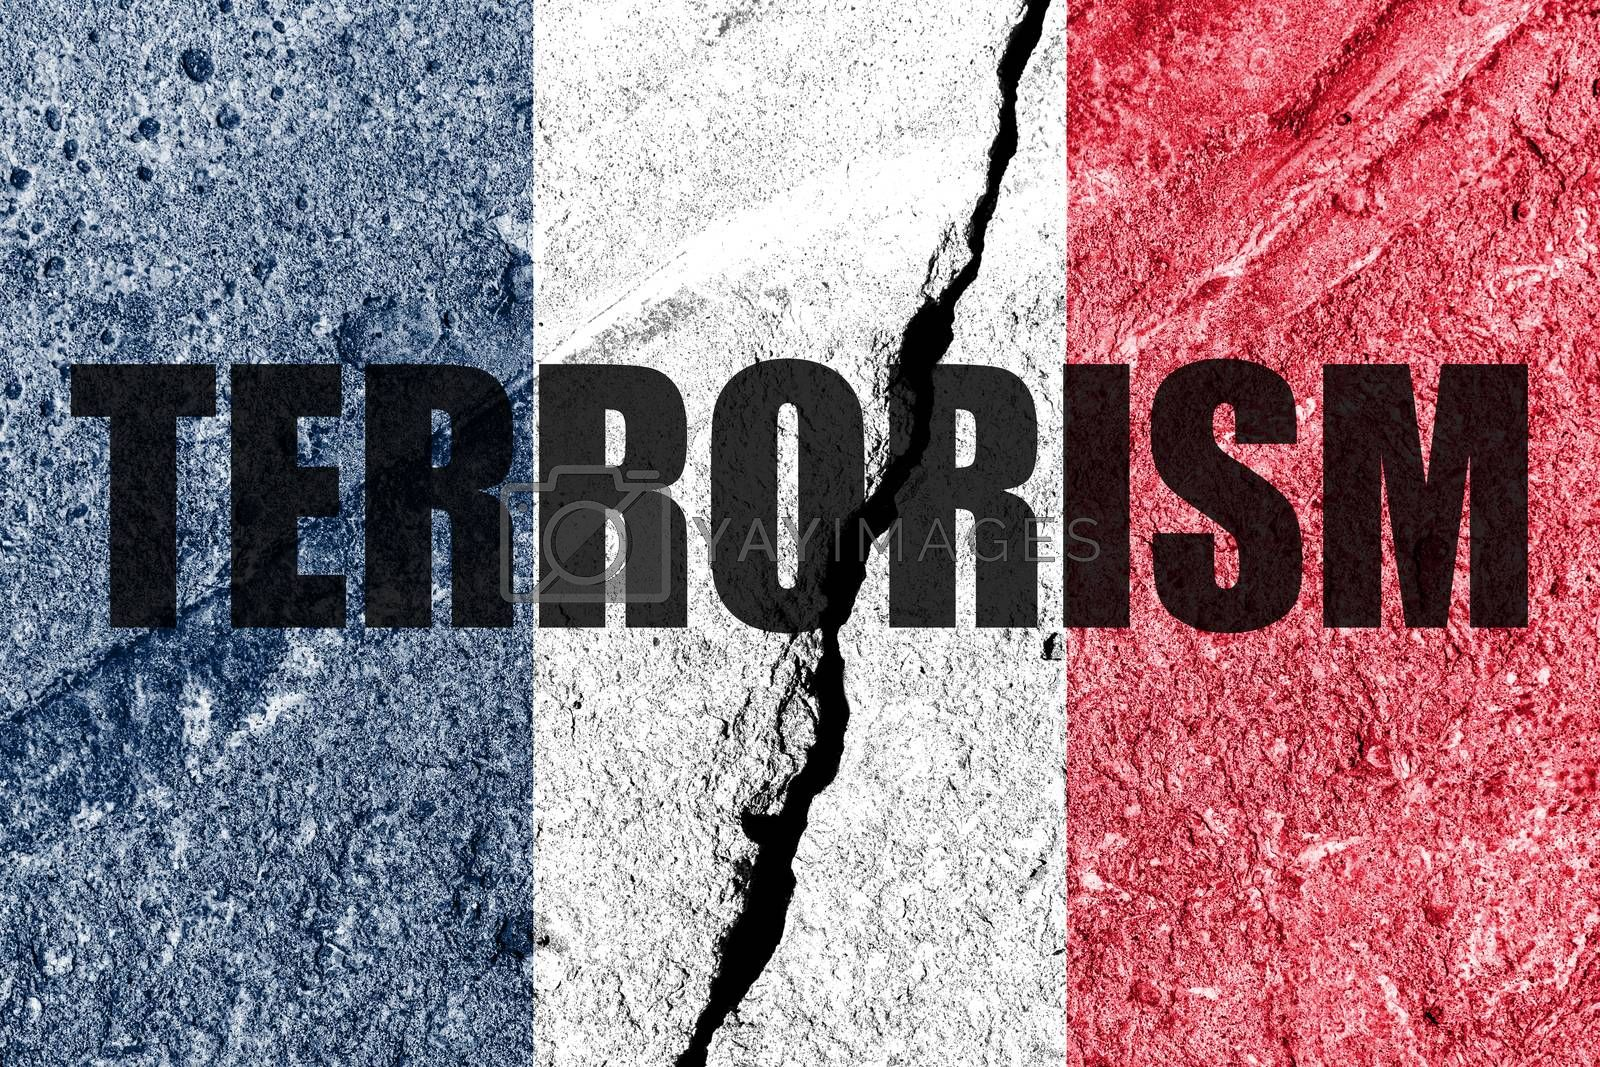 France flag on cracked concrete wall. The concept of terrorism and islamic conflict in the country. Abstract disaster symbol.